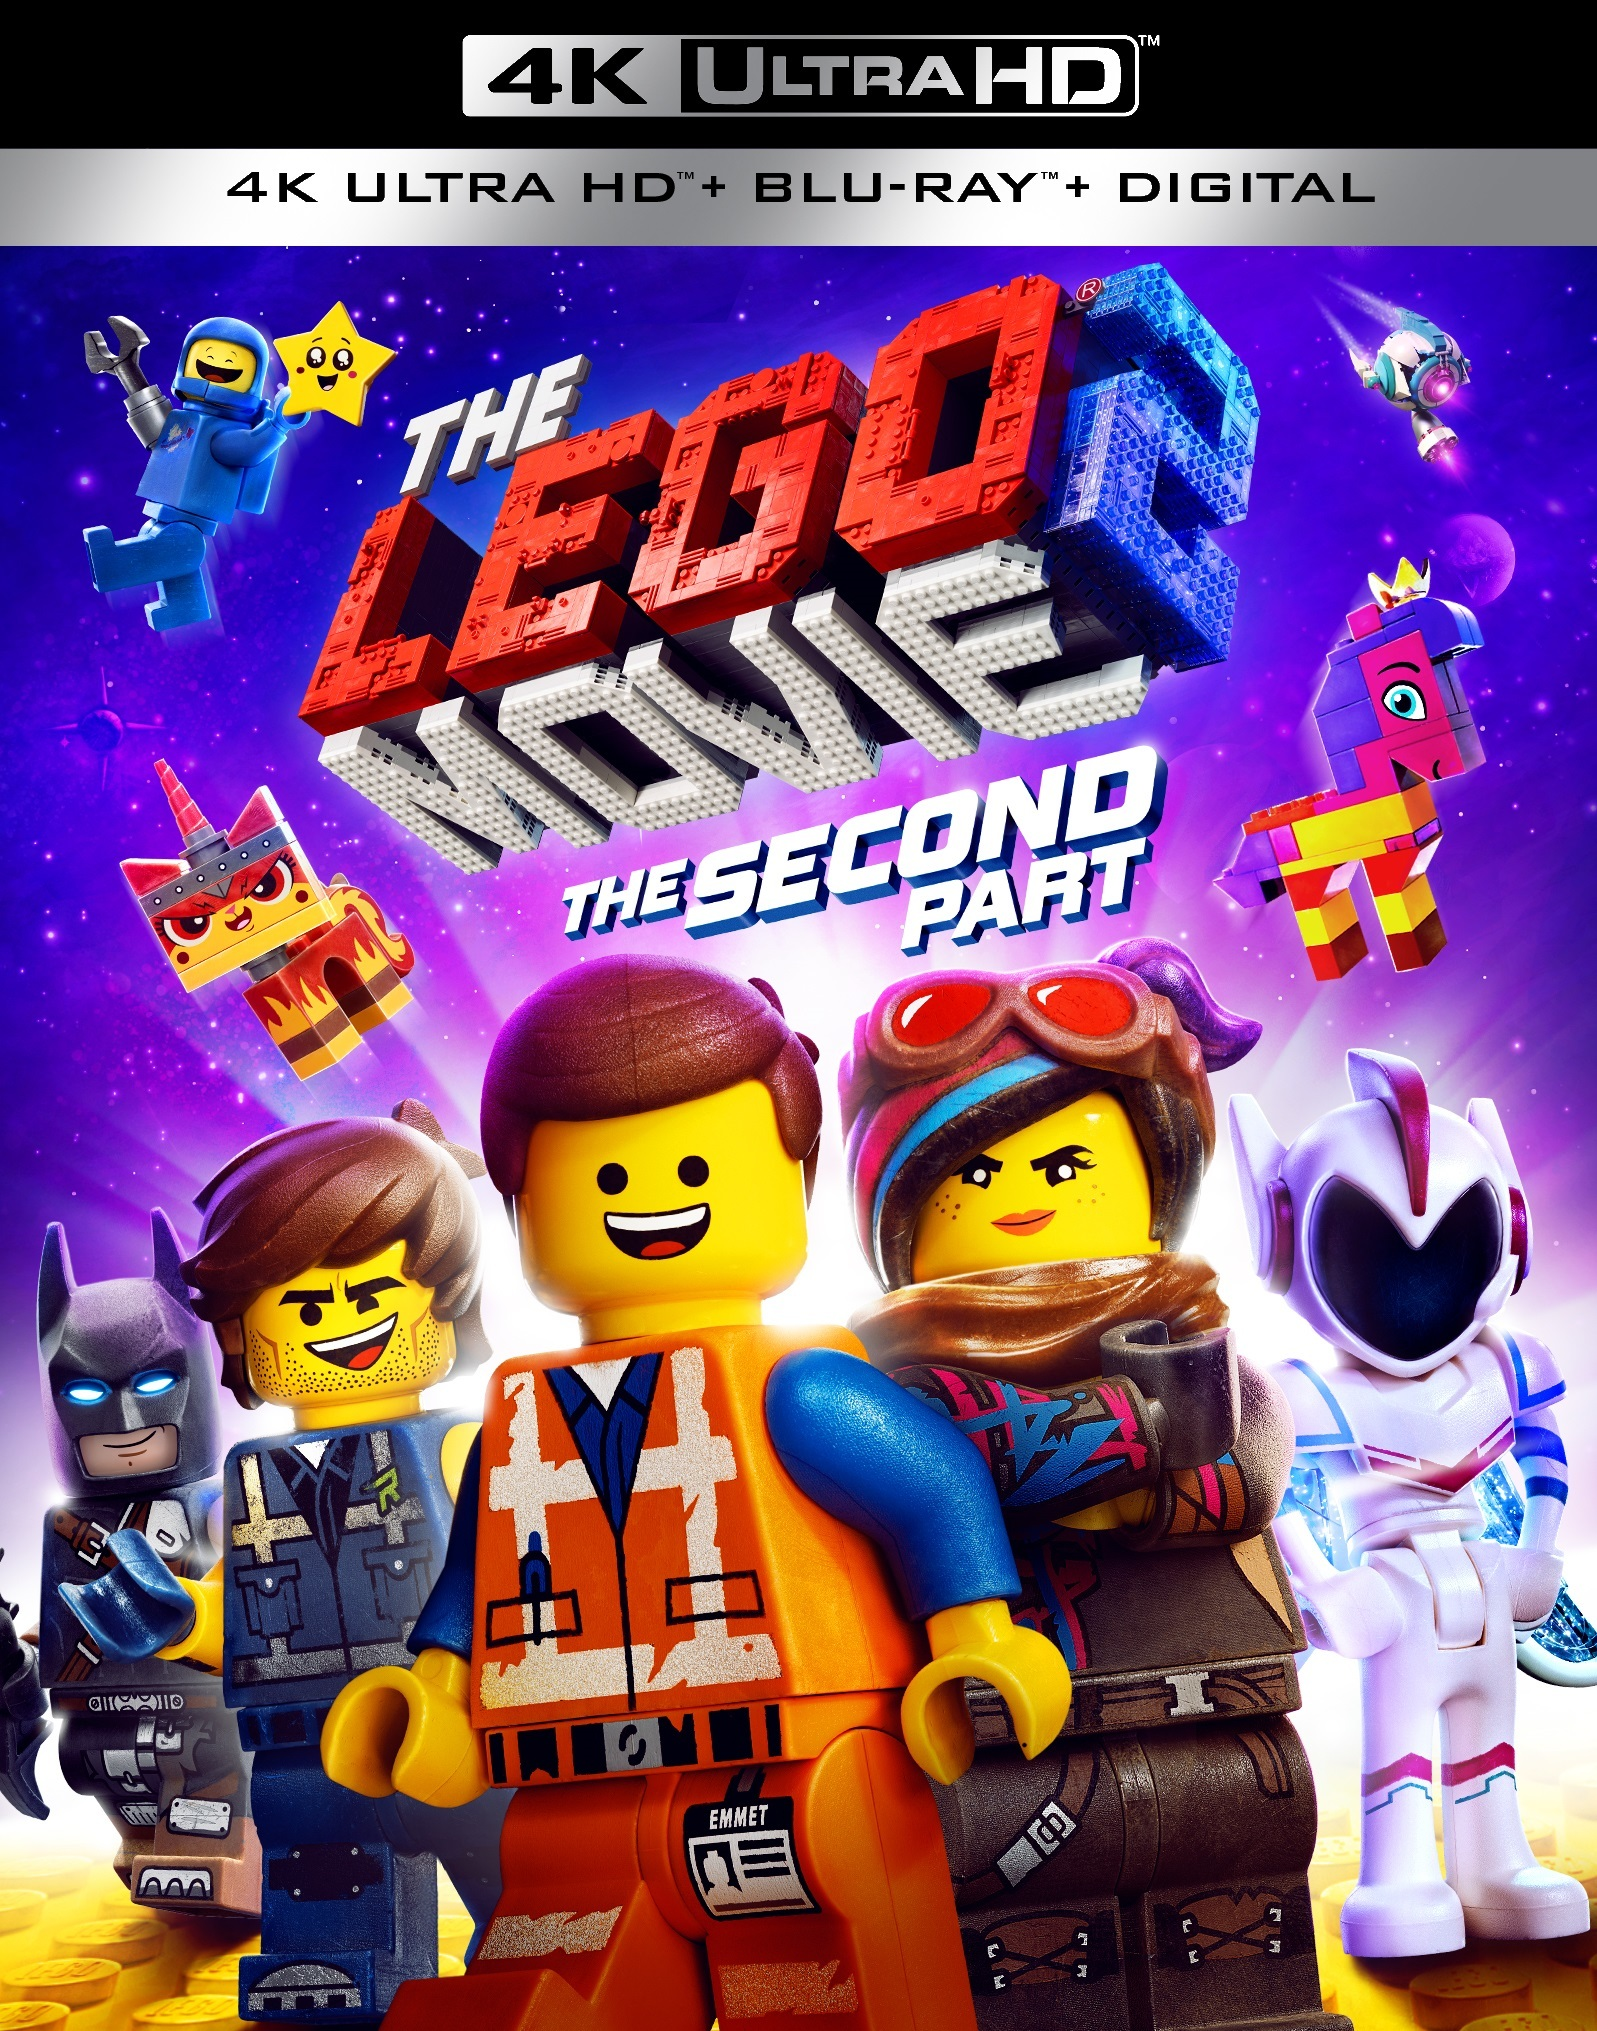 The LEGO Movie 2: The Second Part (4K Ultra HD Blu-ray)(Pre-order / May 7)